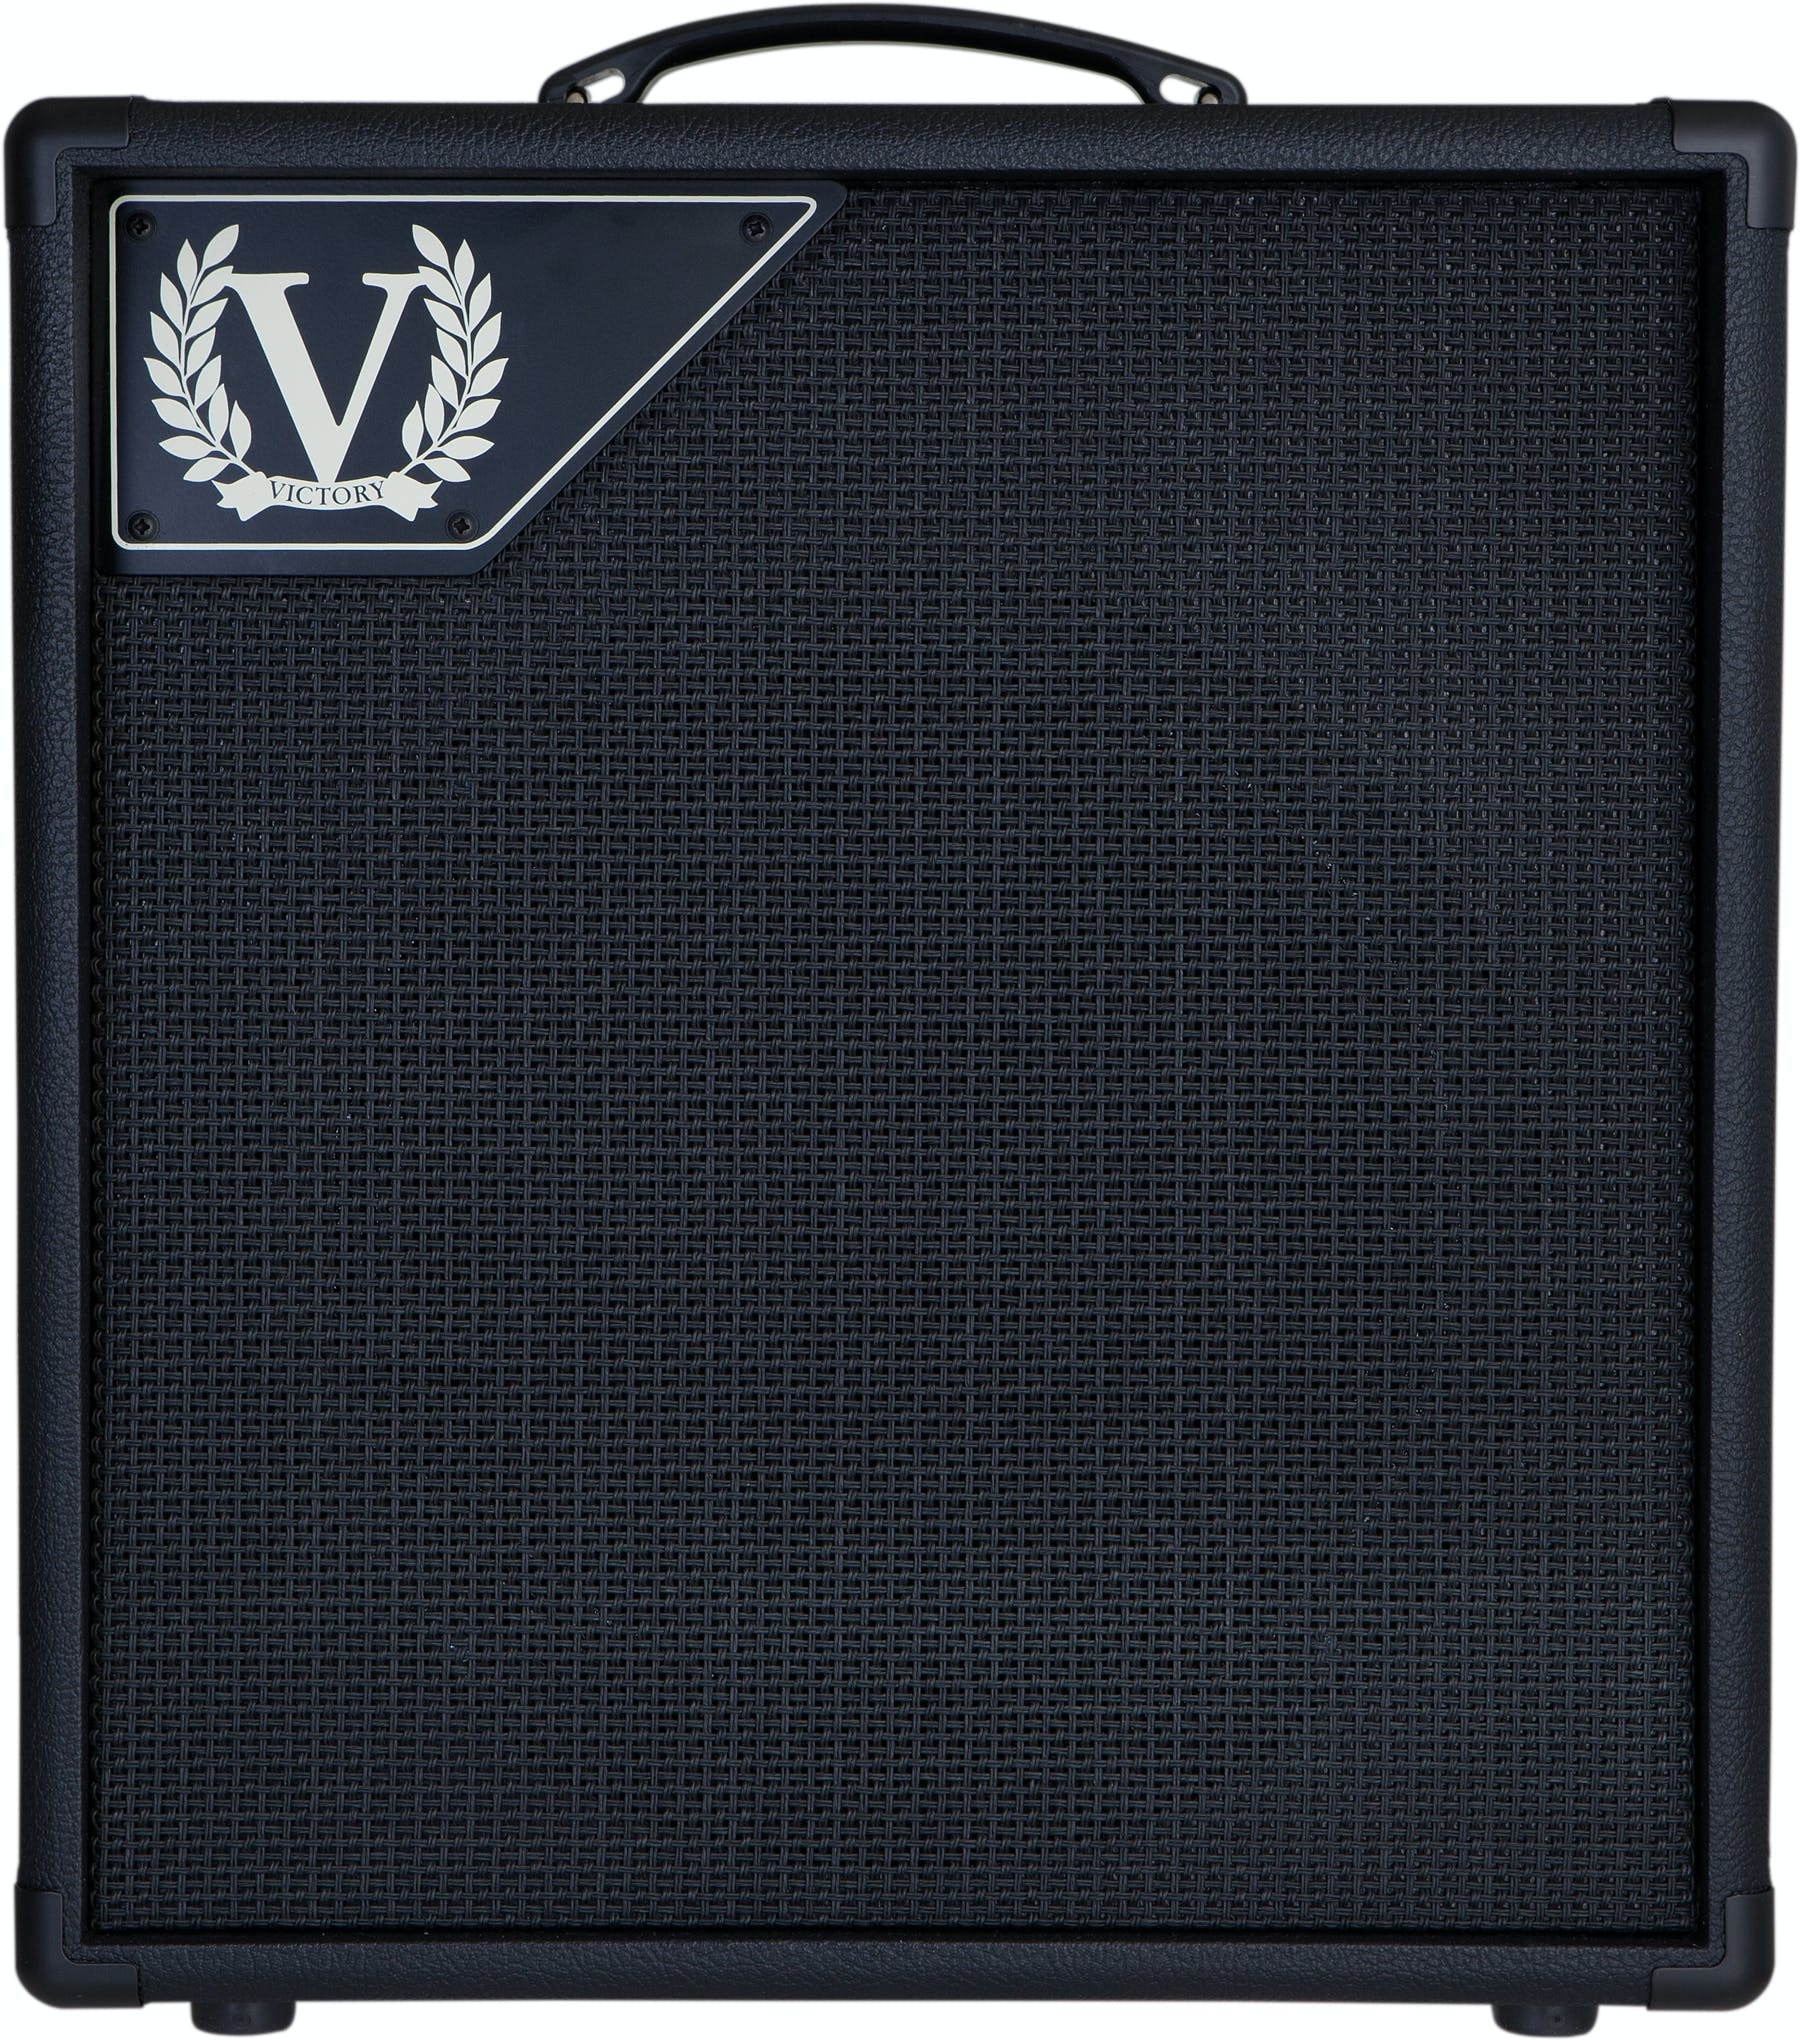 Best valves for Victory V45 The Count amplifiers